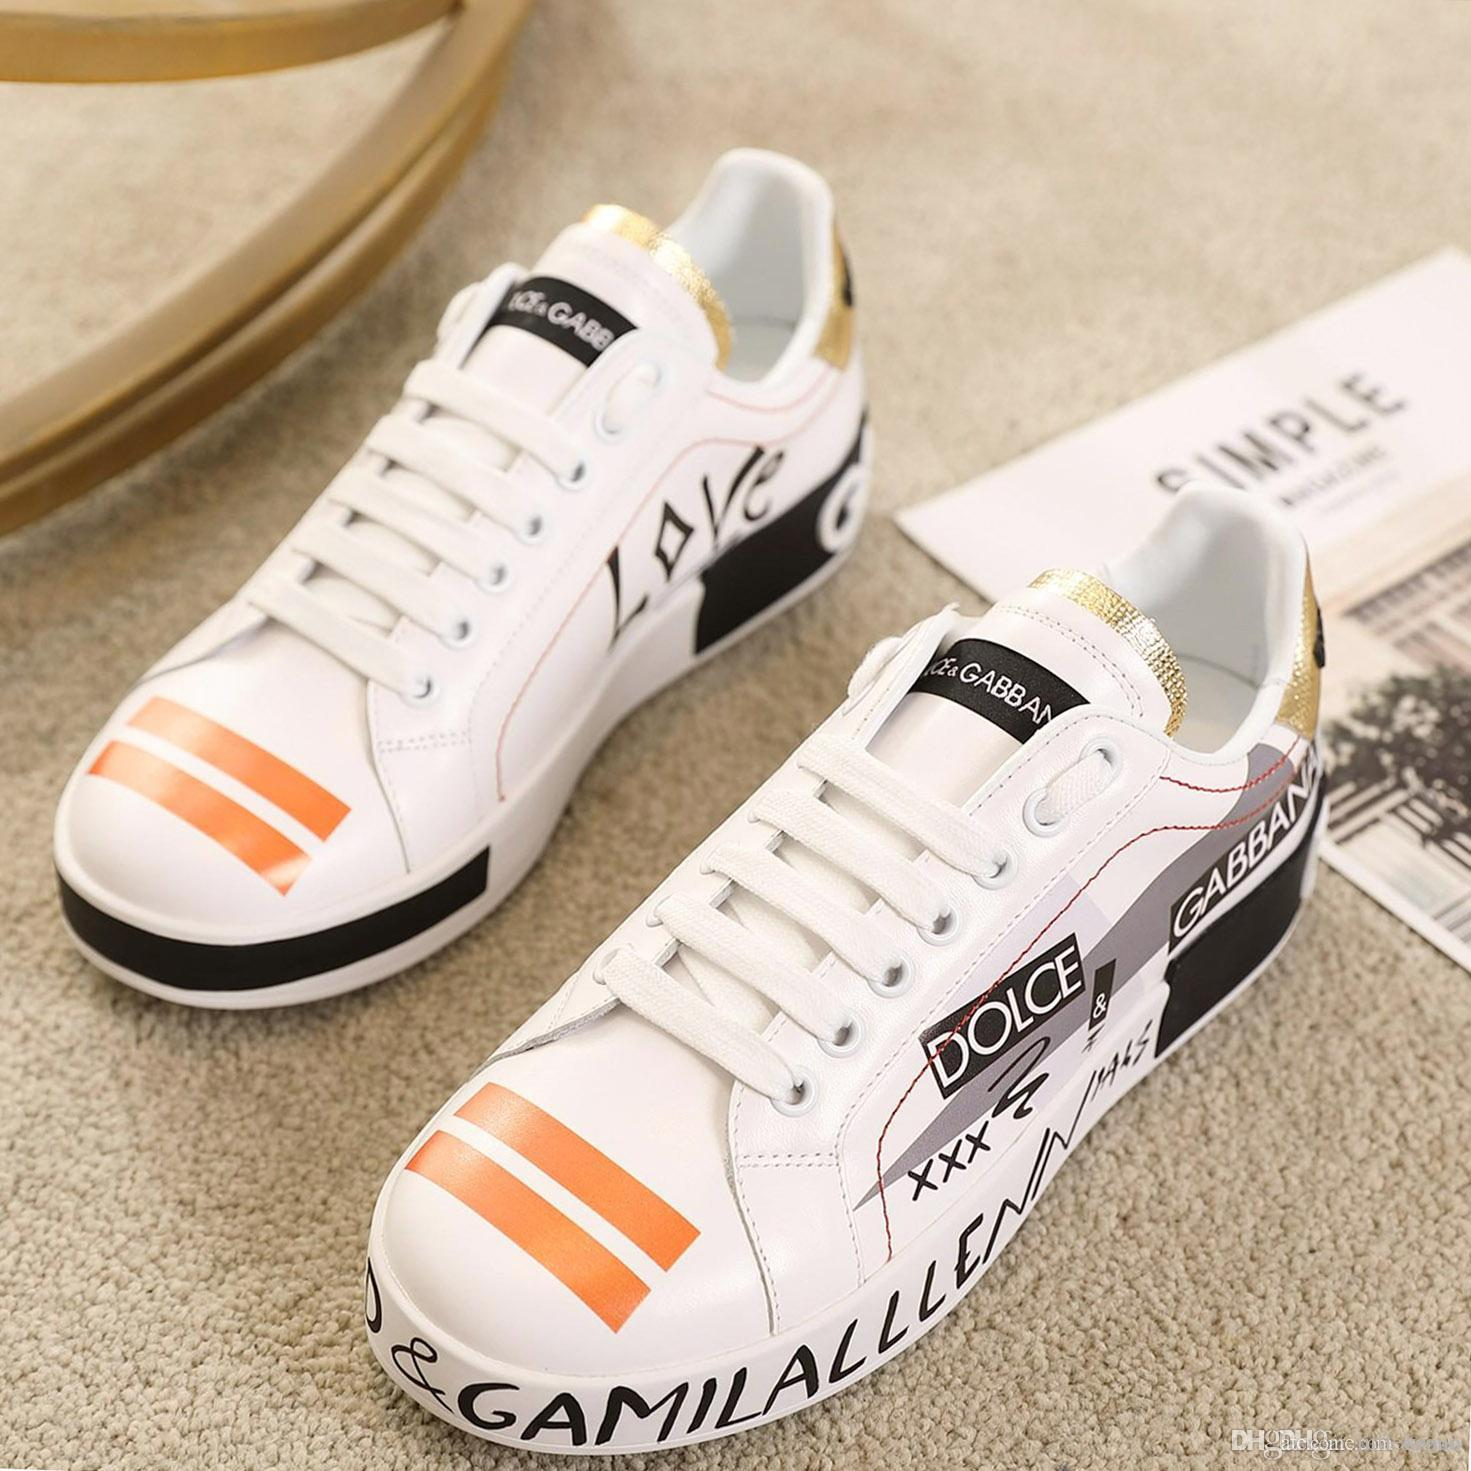 limited Top quality Mens leather casual shoes ,Platforms Print pattern couple shoes fashion personality wild sports shoes Size: 35-45 0071